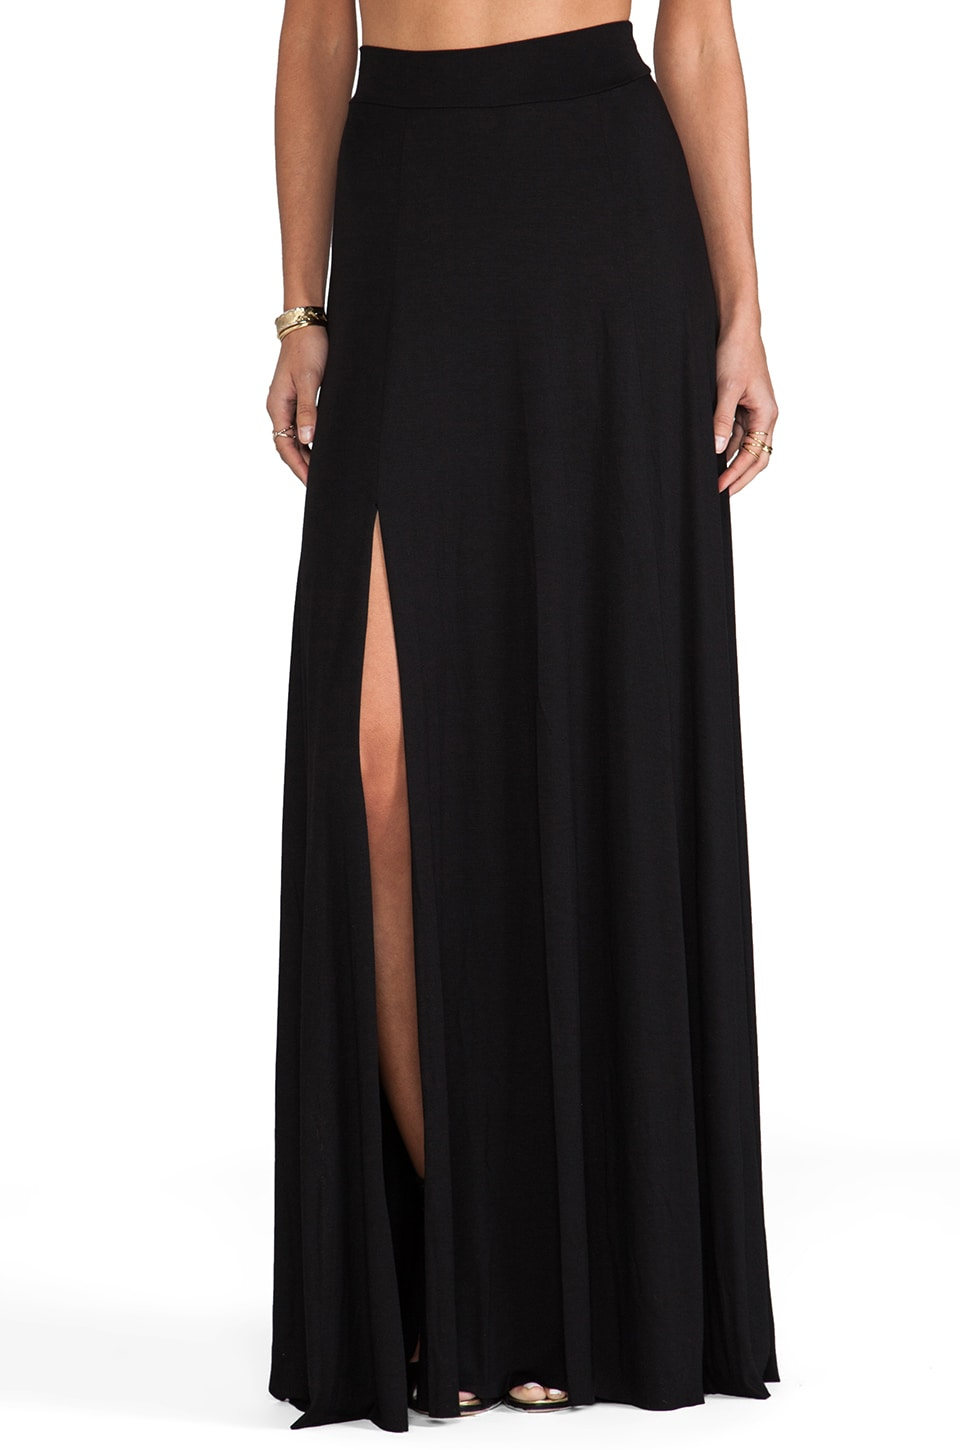 Rachel Pally Josefine Skirt in Black